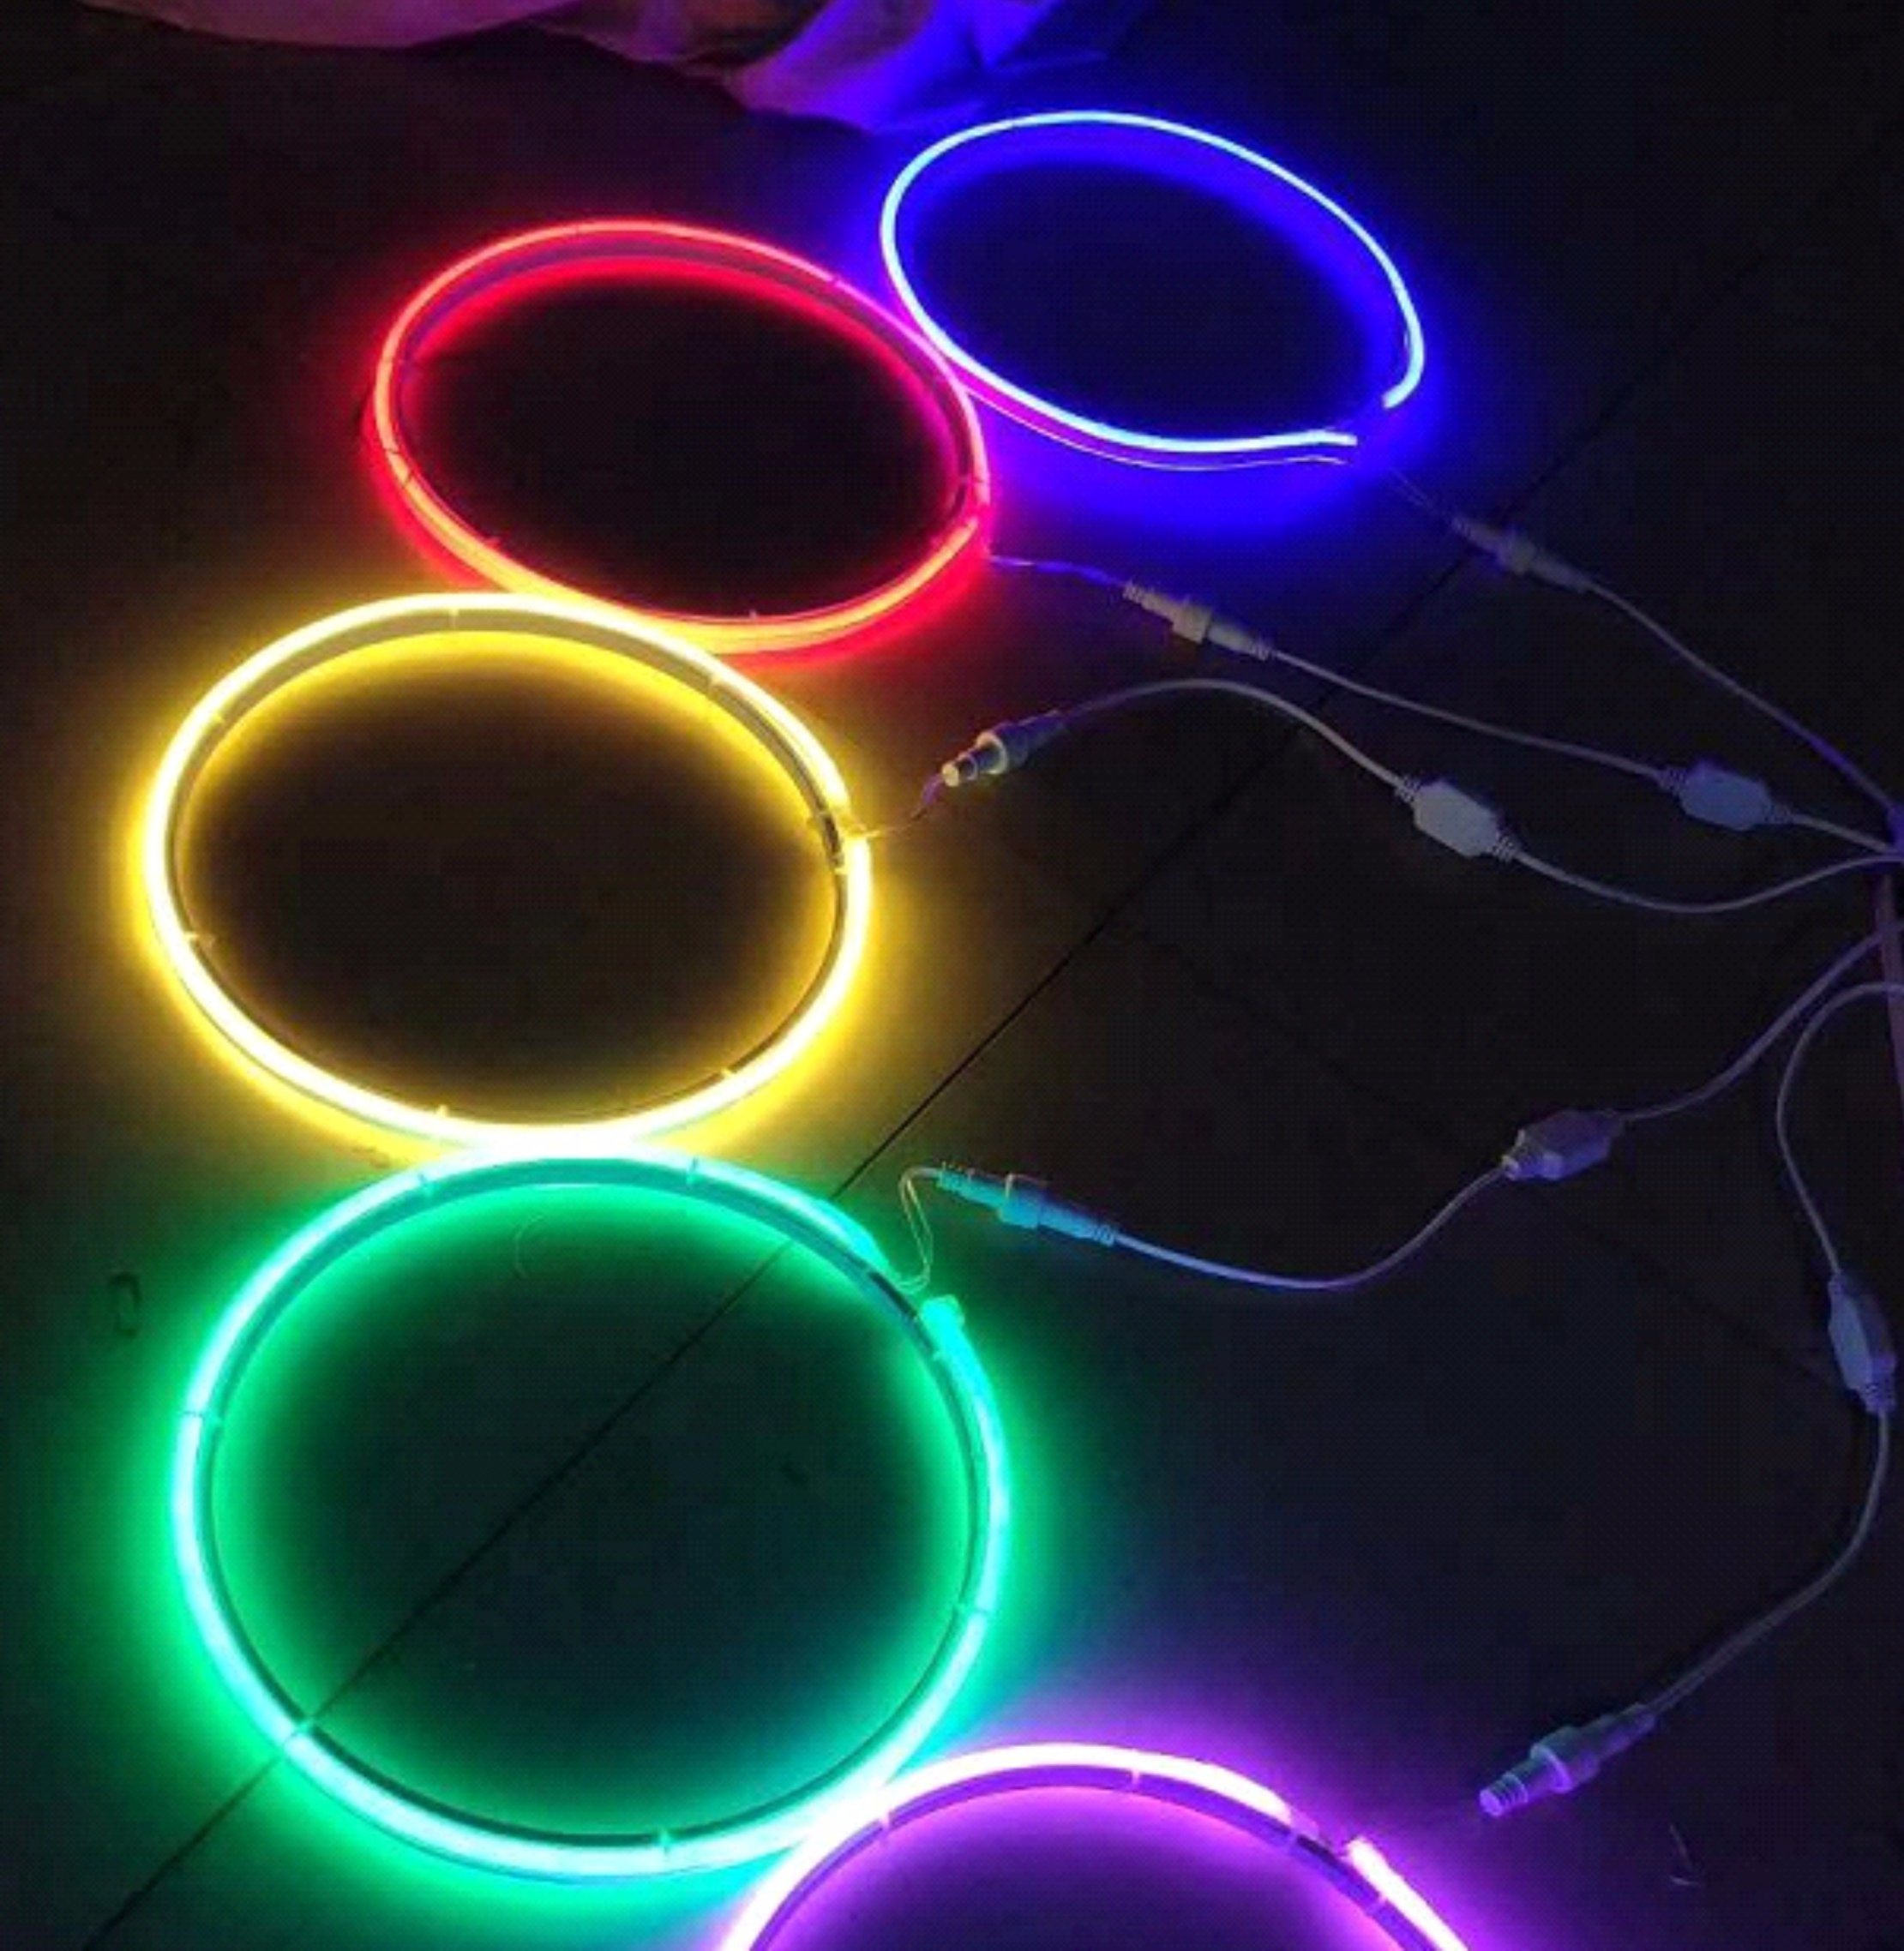 Light Decoration Diwali Hot Item Led Neon Light With Iron Frame 2d Motif Light For Diwali Outdoor Tree Decoration